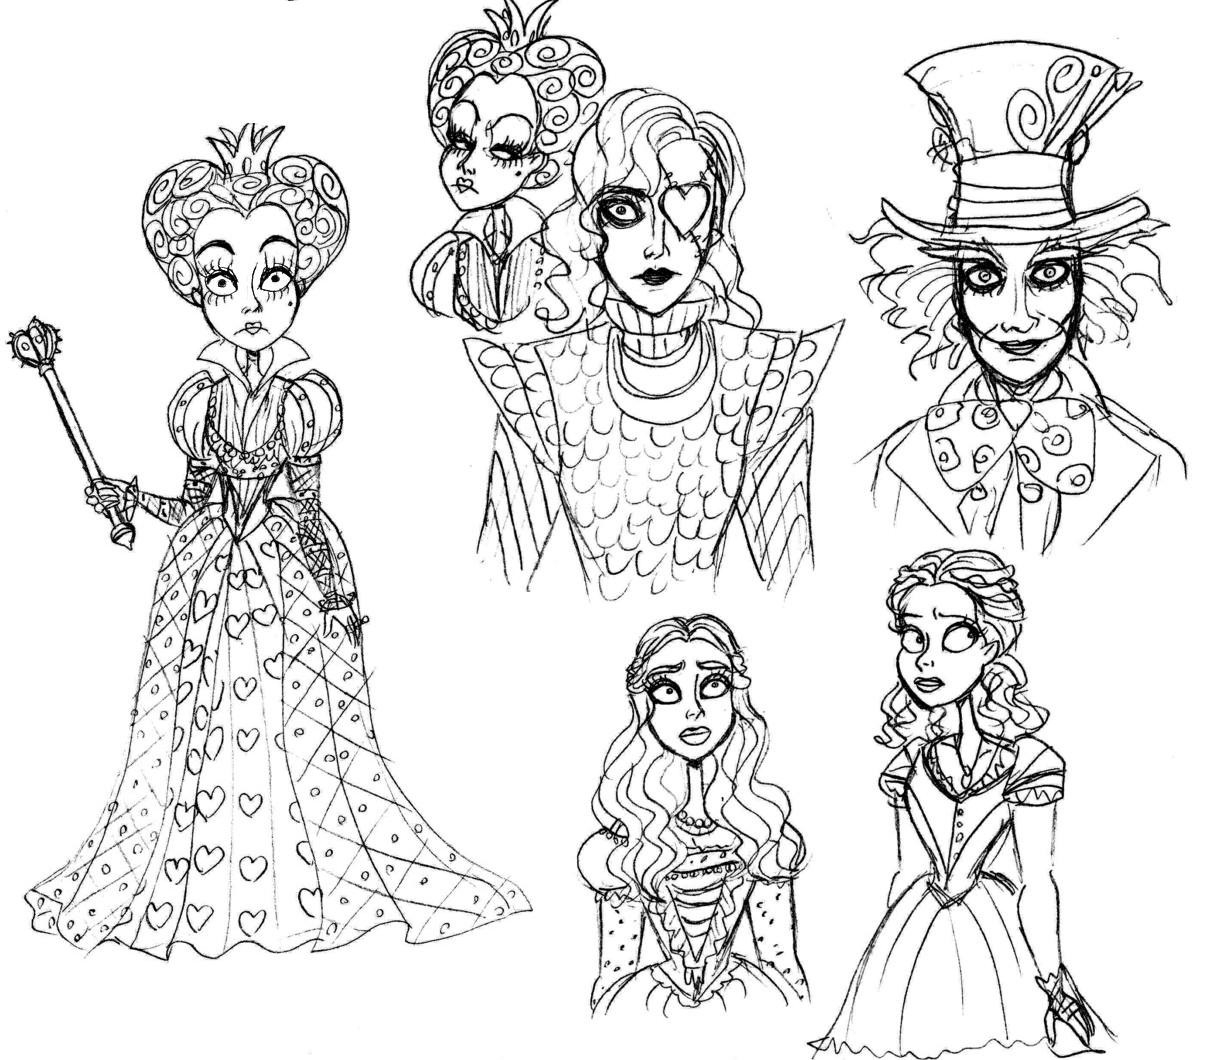 Tim Butons Alice Sketches By Lily Pily On Deviantart Tweedle Dee And Dum Coloring Pages Wonderland In Characters Burton